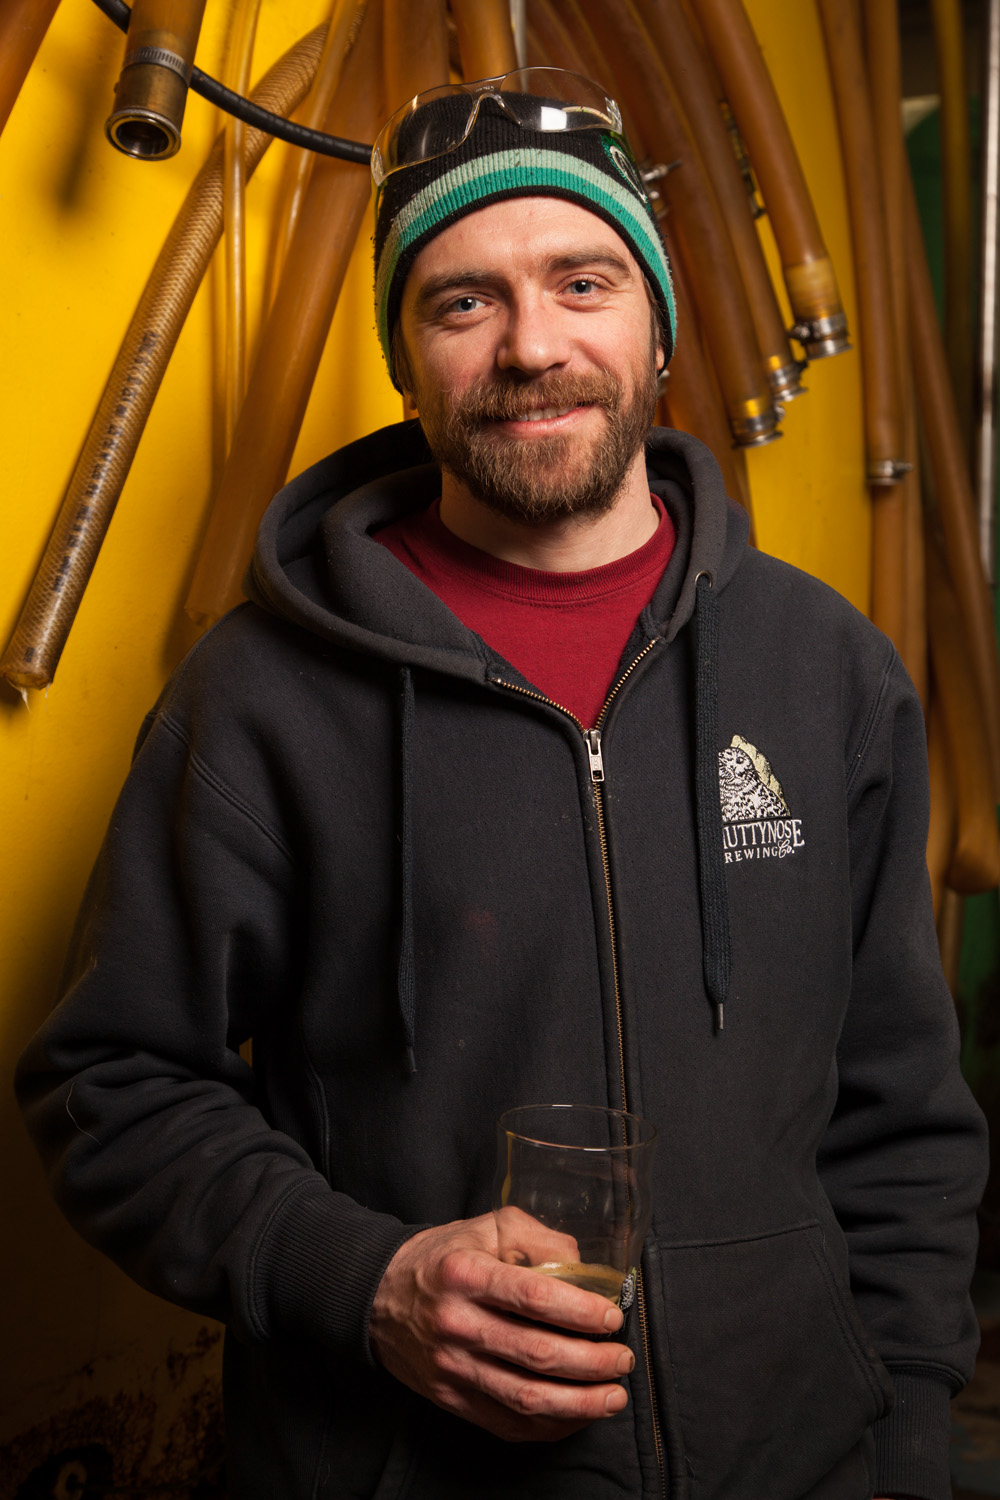 Tyson Demers, Brewer at Smuttlabs Portsmouth, NH Established in 1994